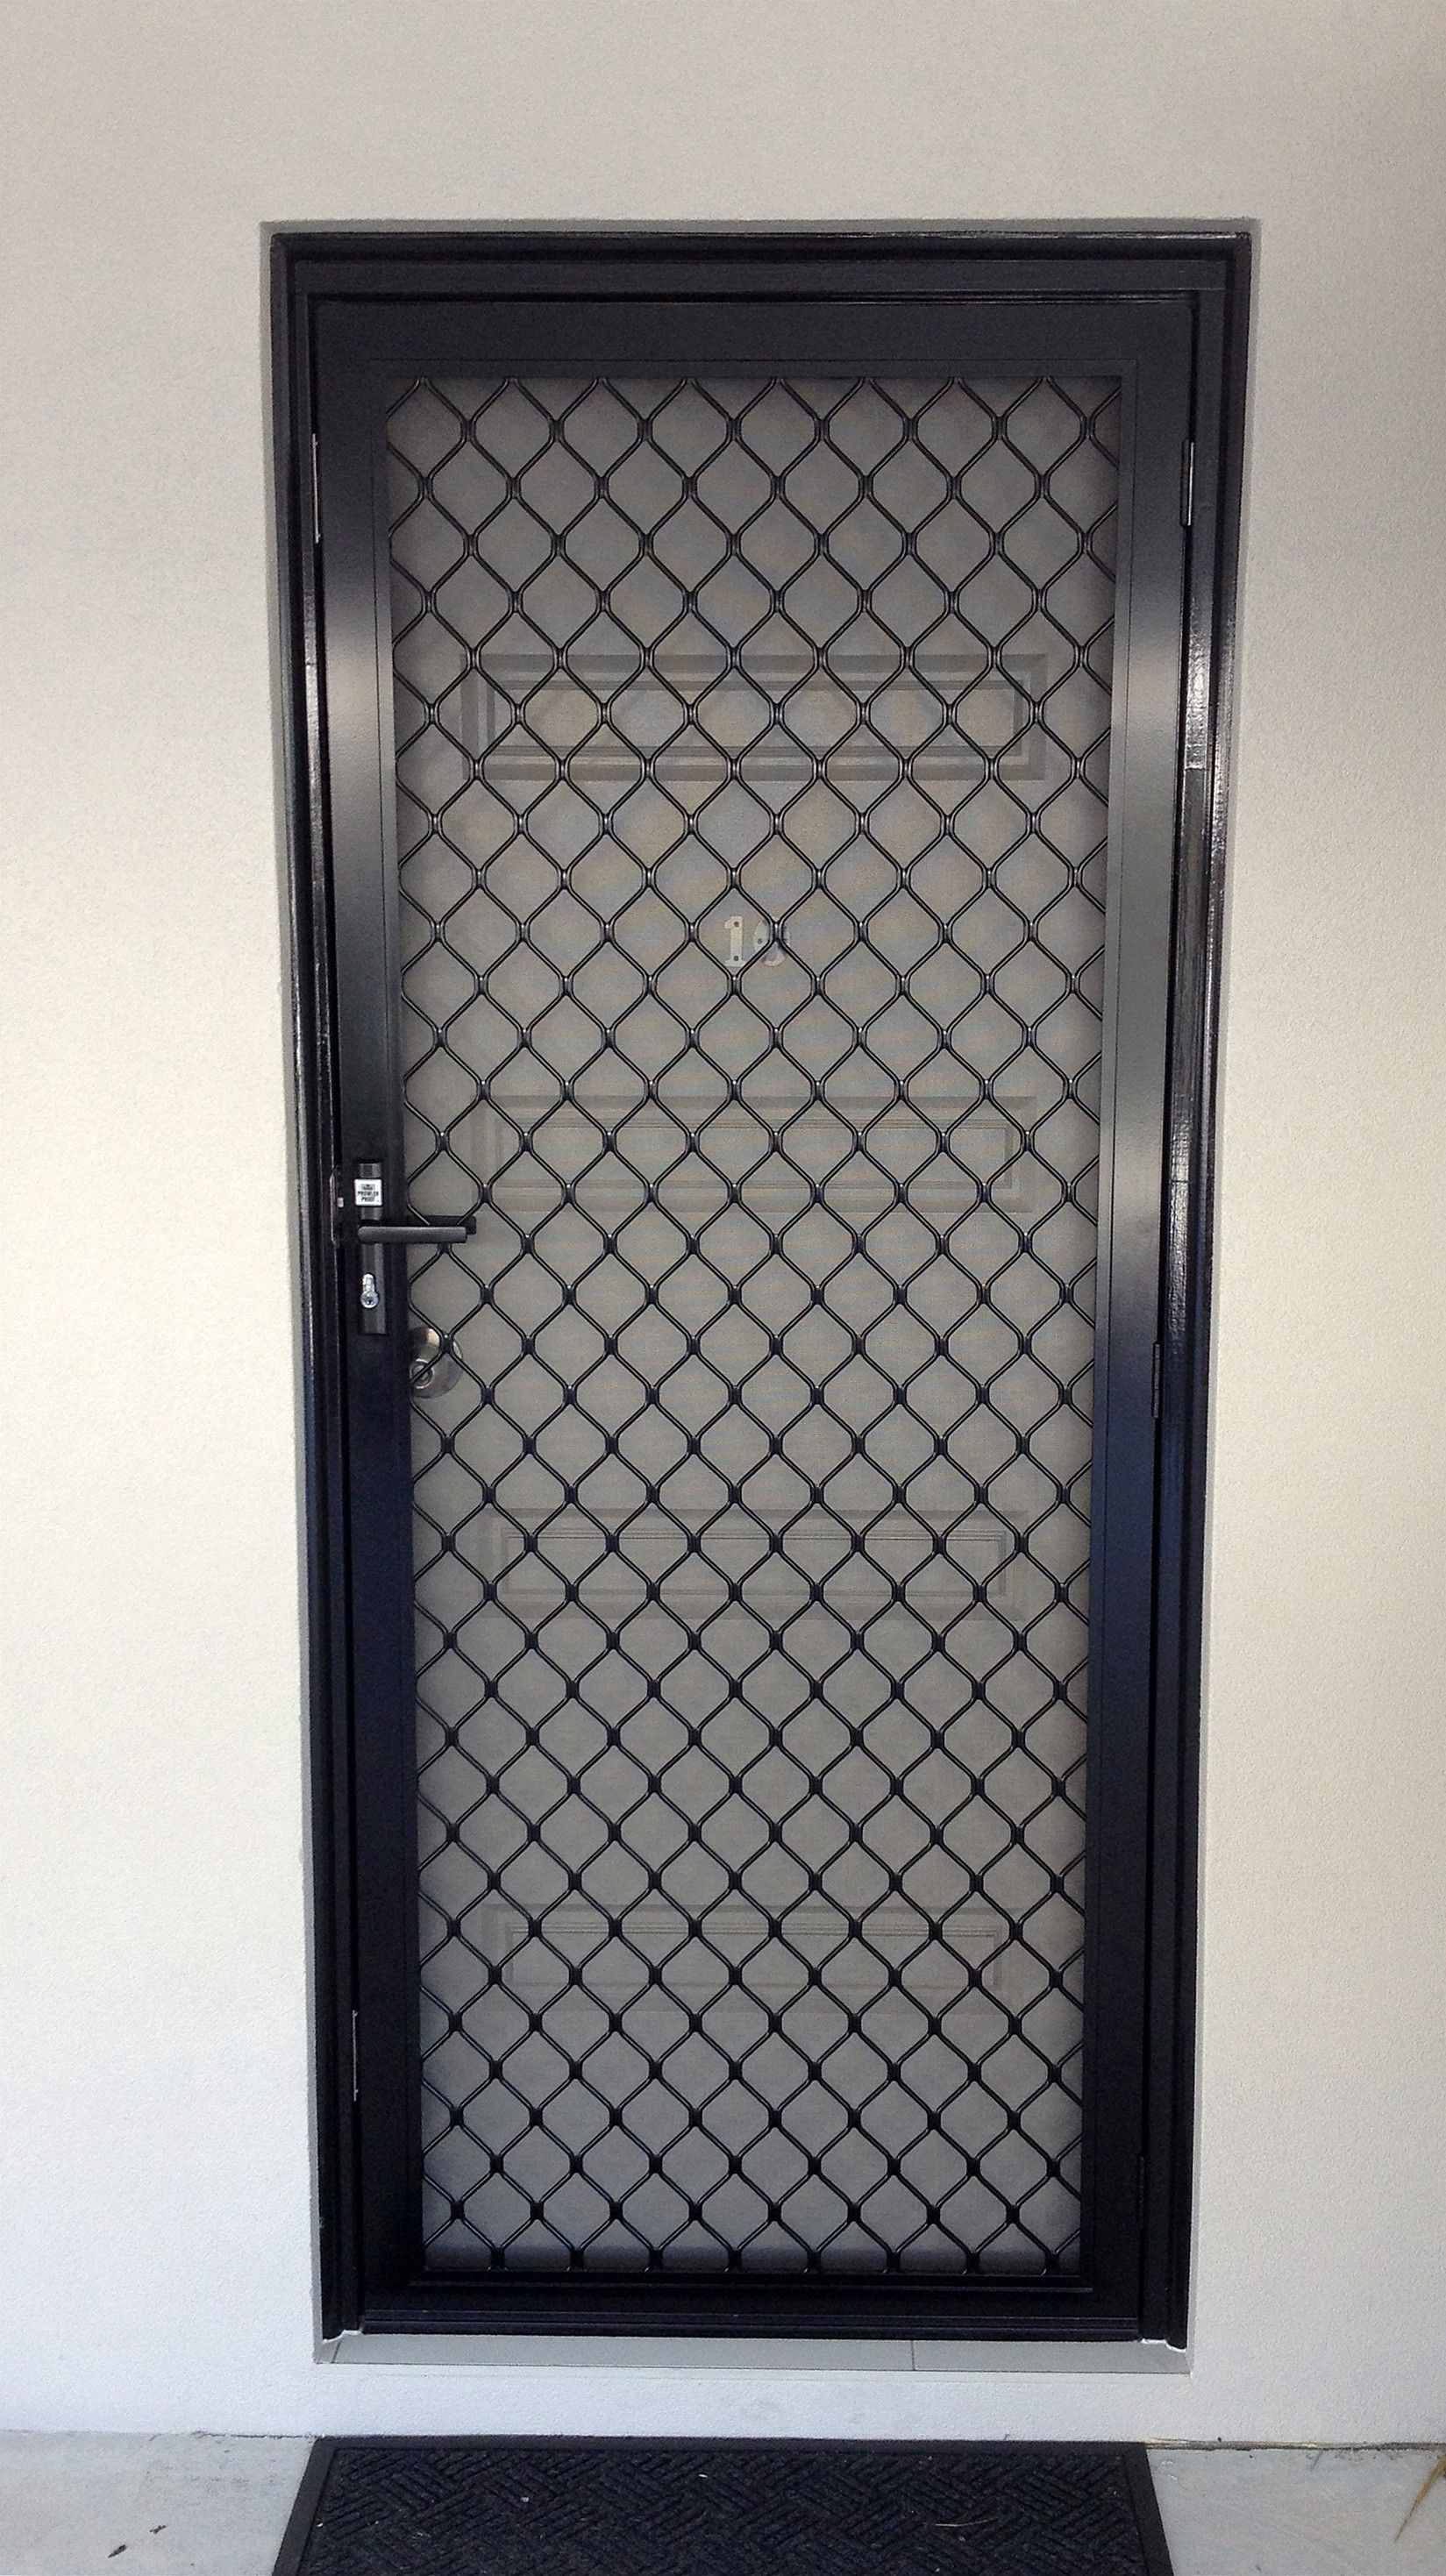 Ironclad Security Doors Detroit Mi (With images) | Metal ...